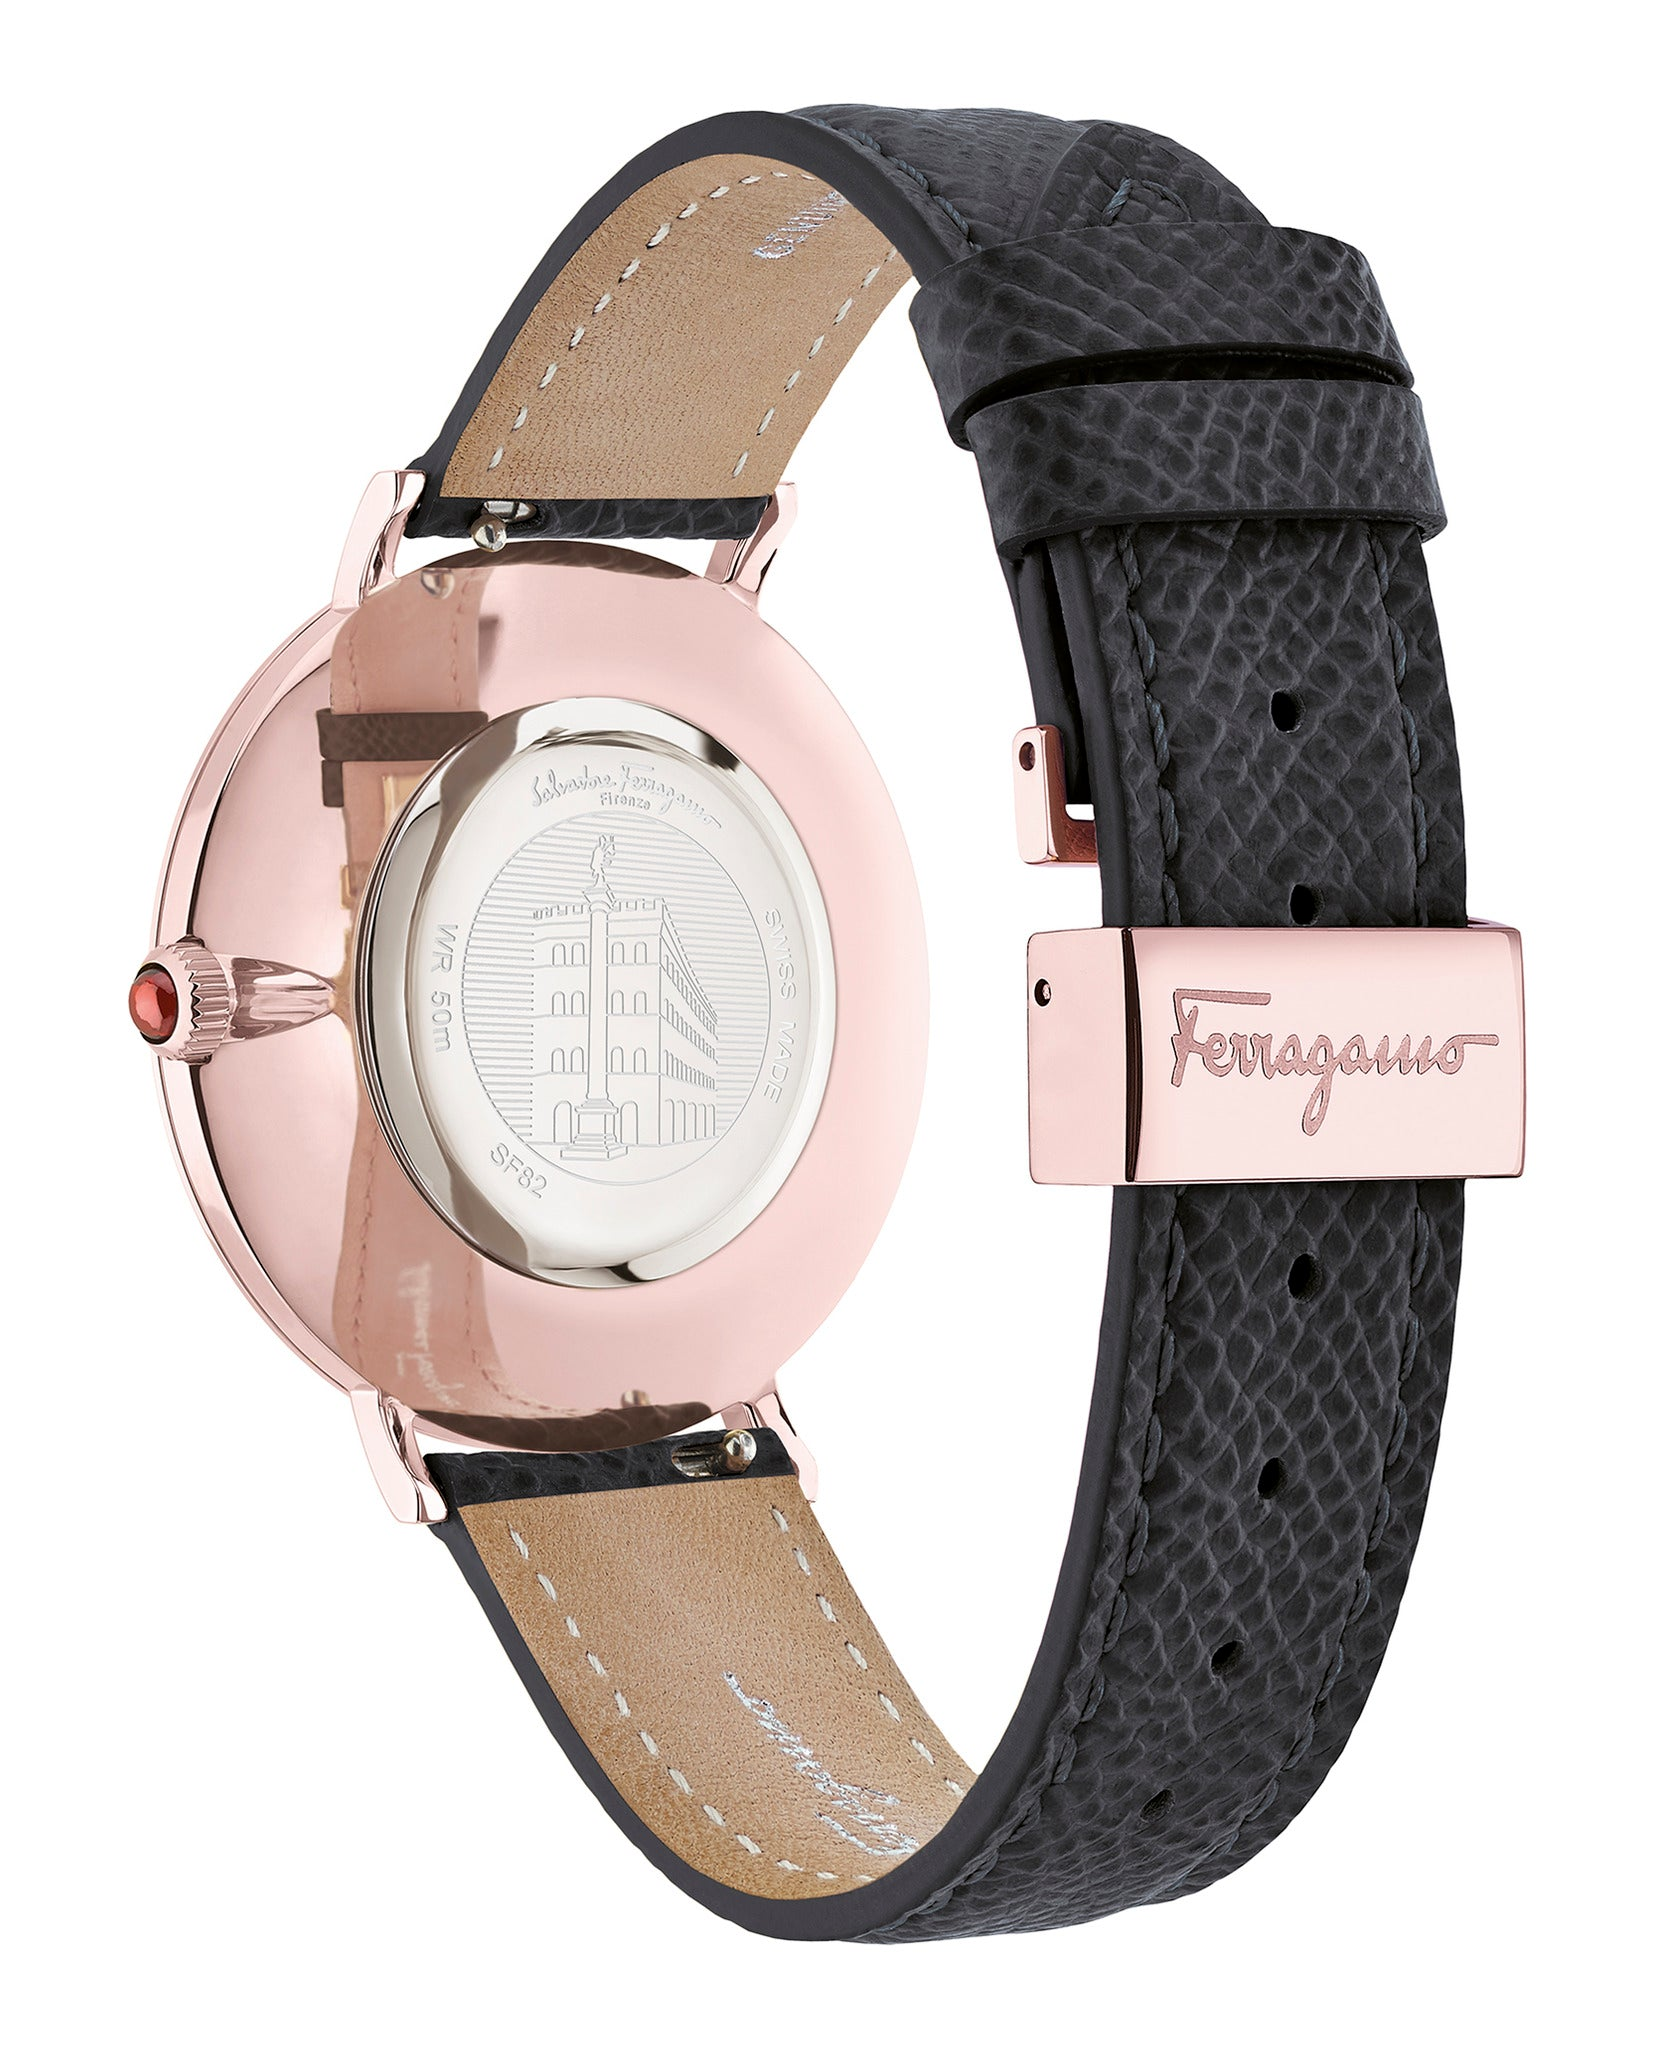 Minuetto Leather Watch